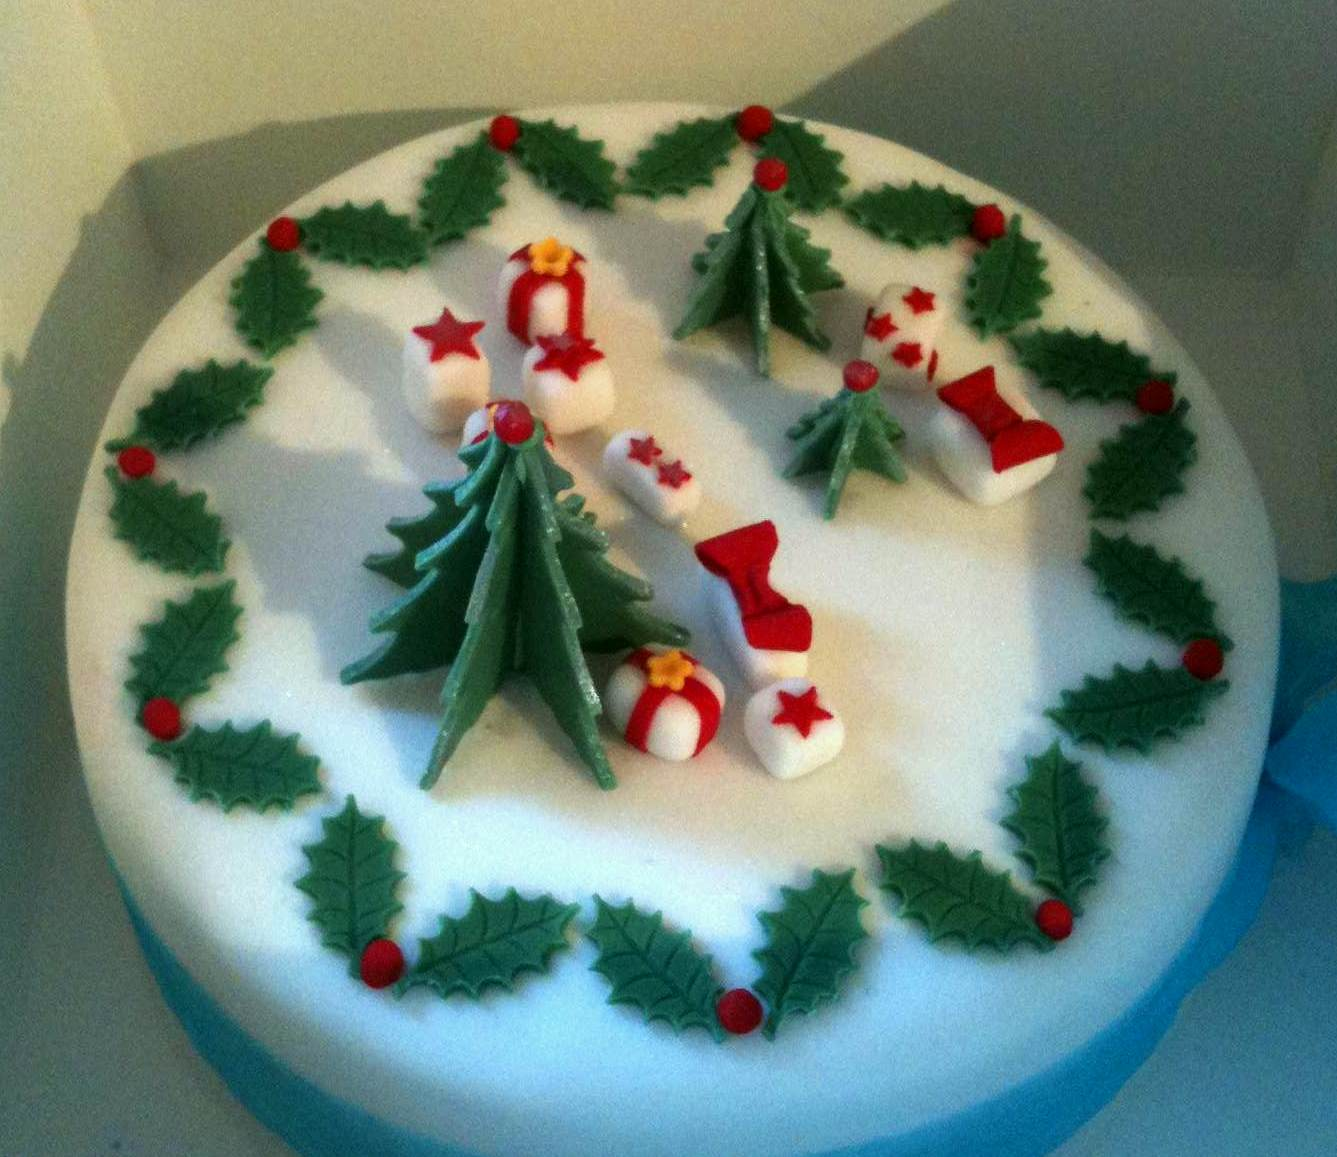 PicturesPool: Christmas Cakes Pictures | Christmas Cakes ...